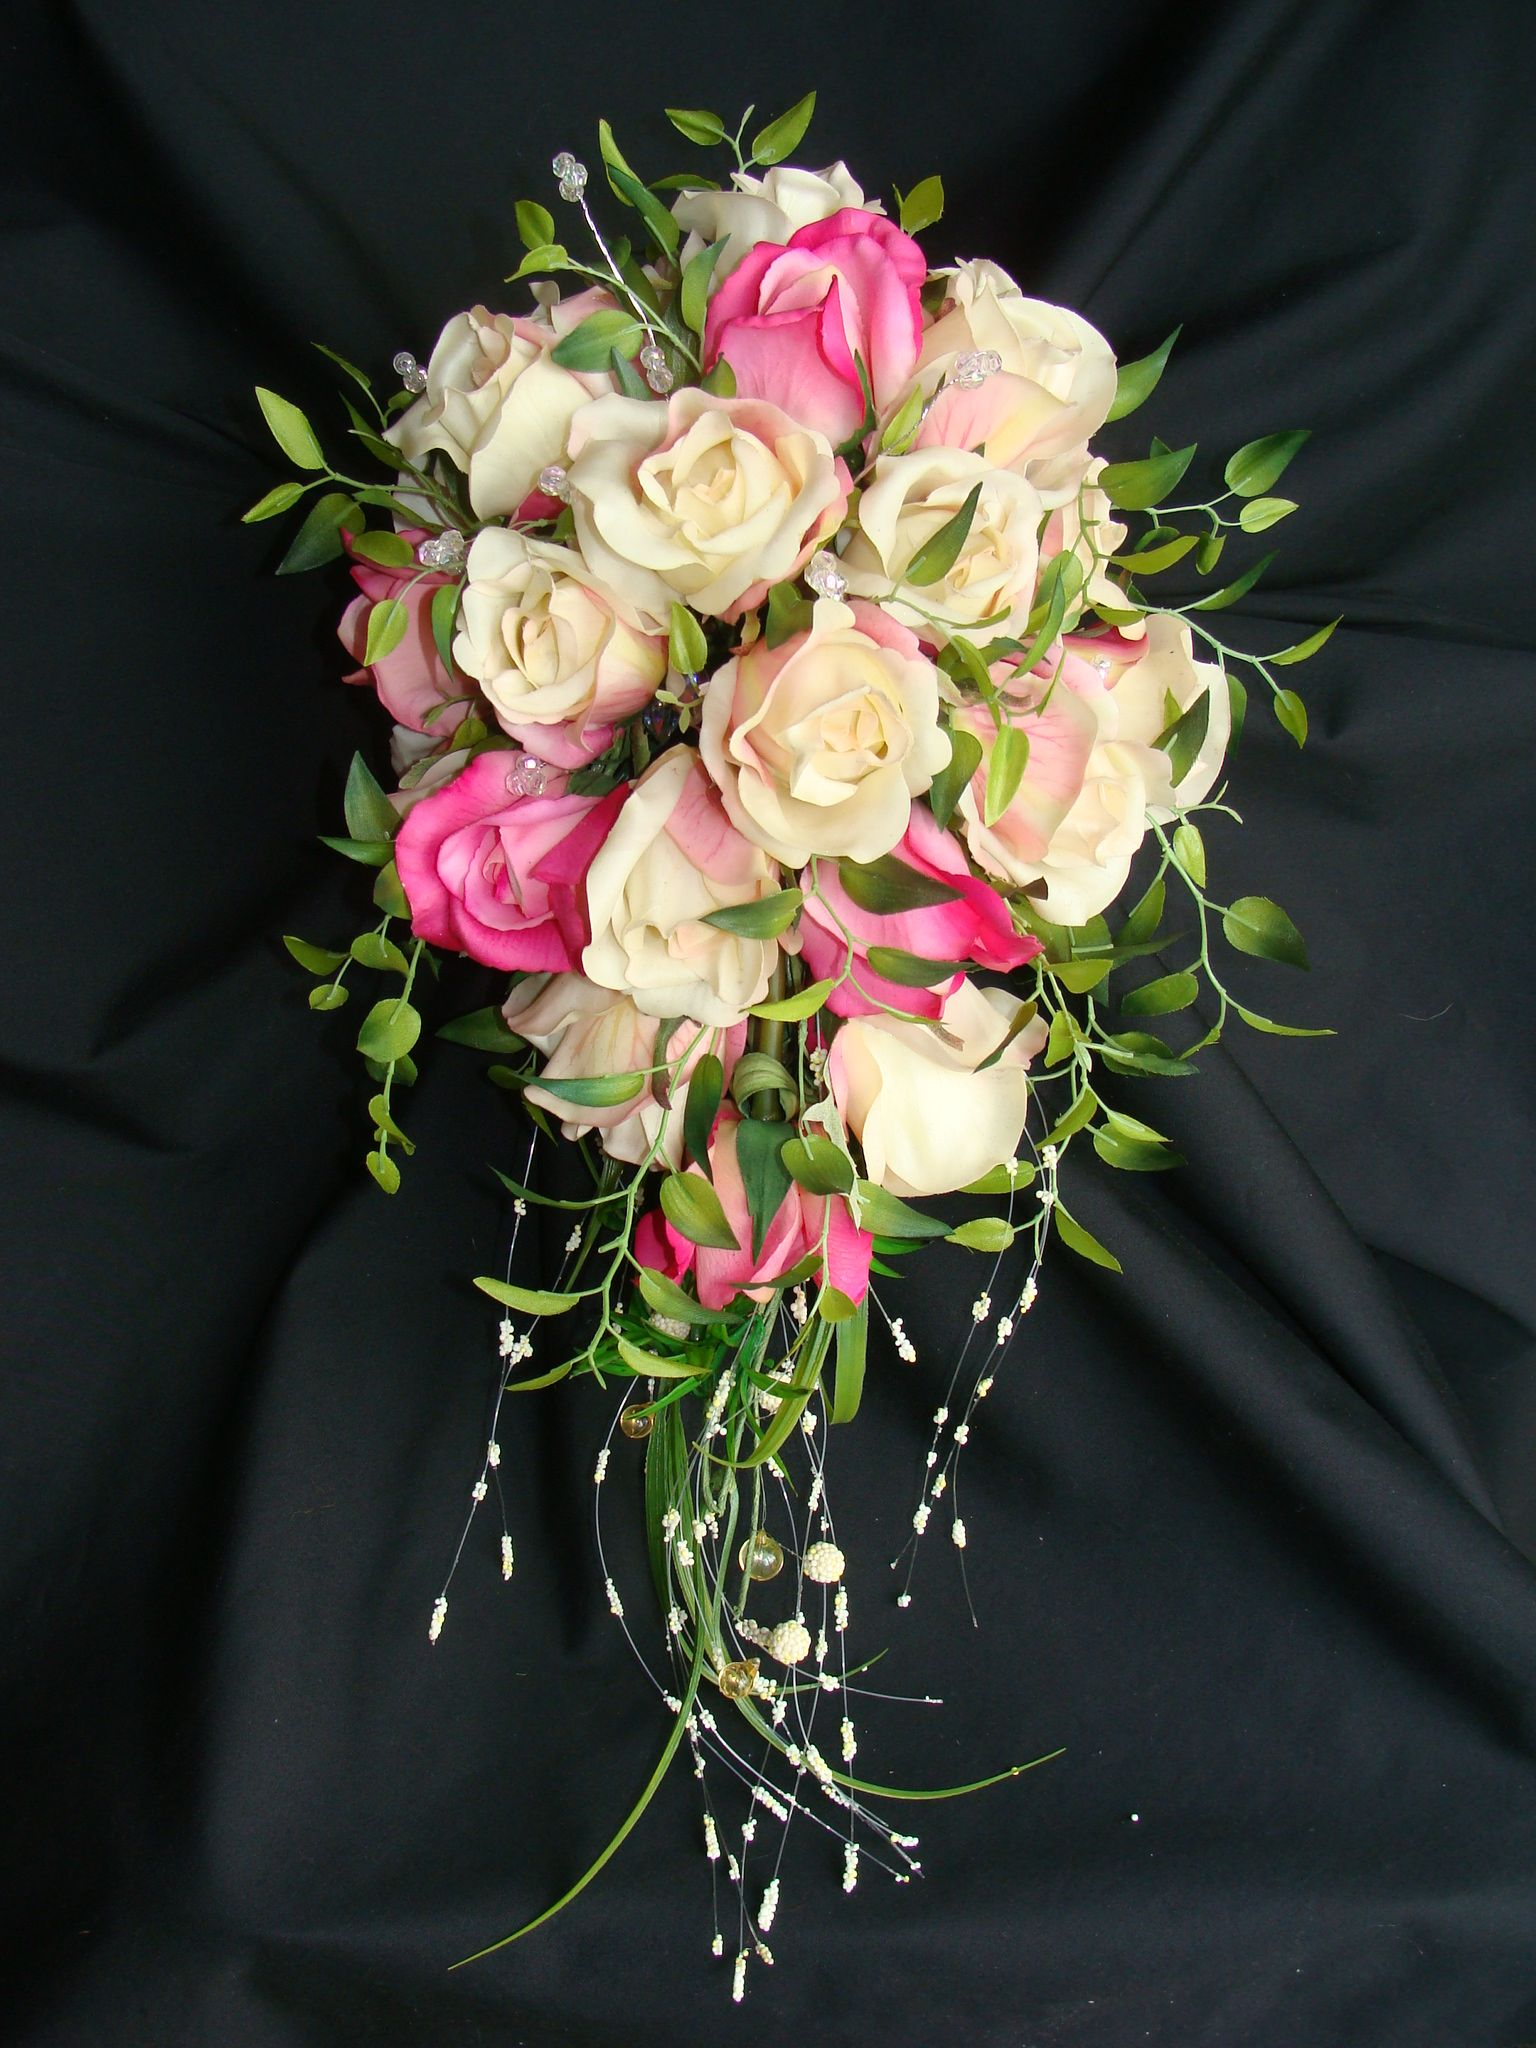 Make your own bridal flowers wedding bouquets bouquet flowers make your own bridal flowers wedding bouquets izmirmasajfo